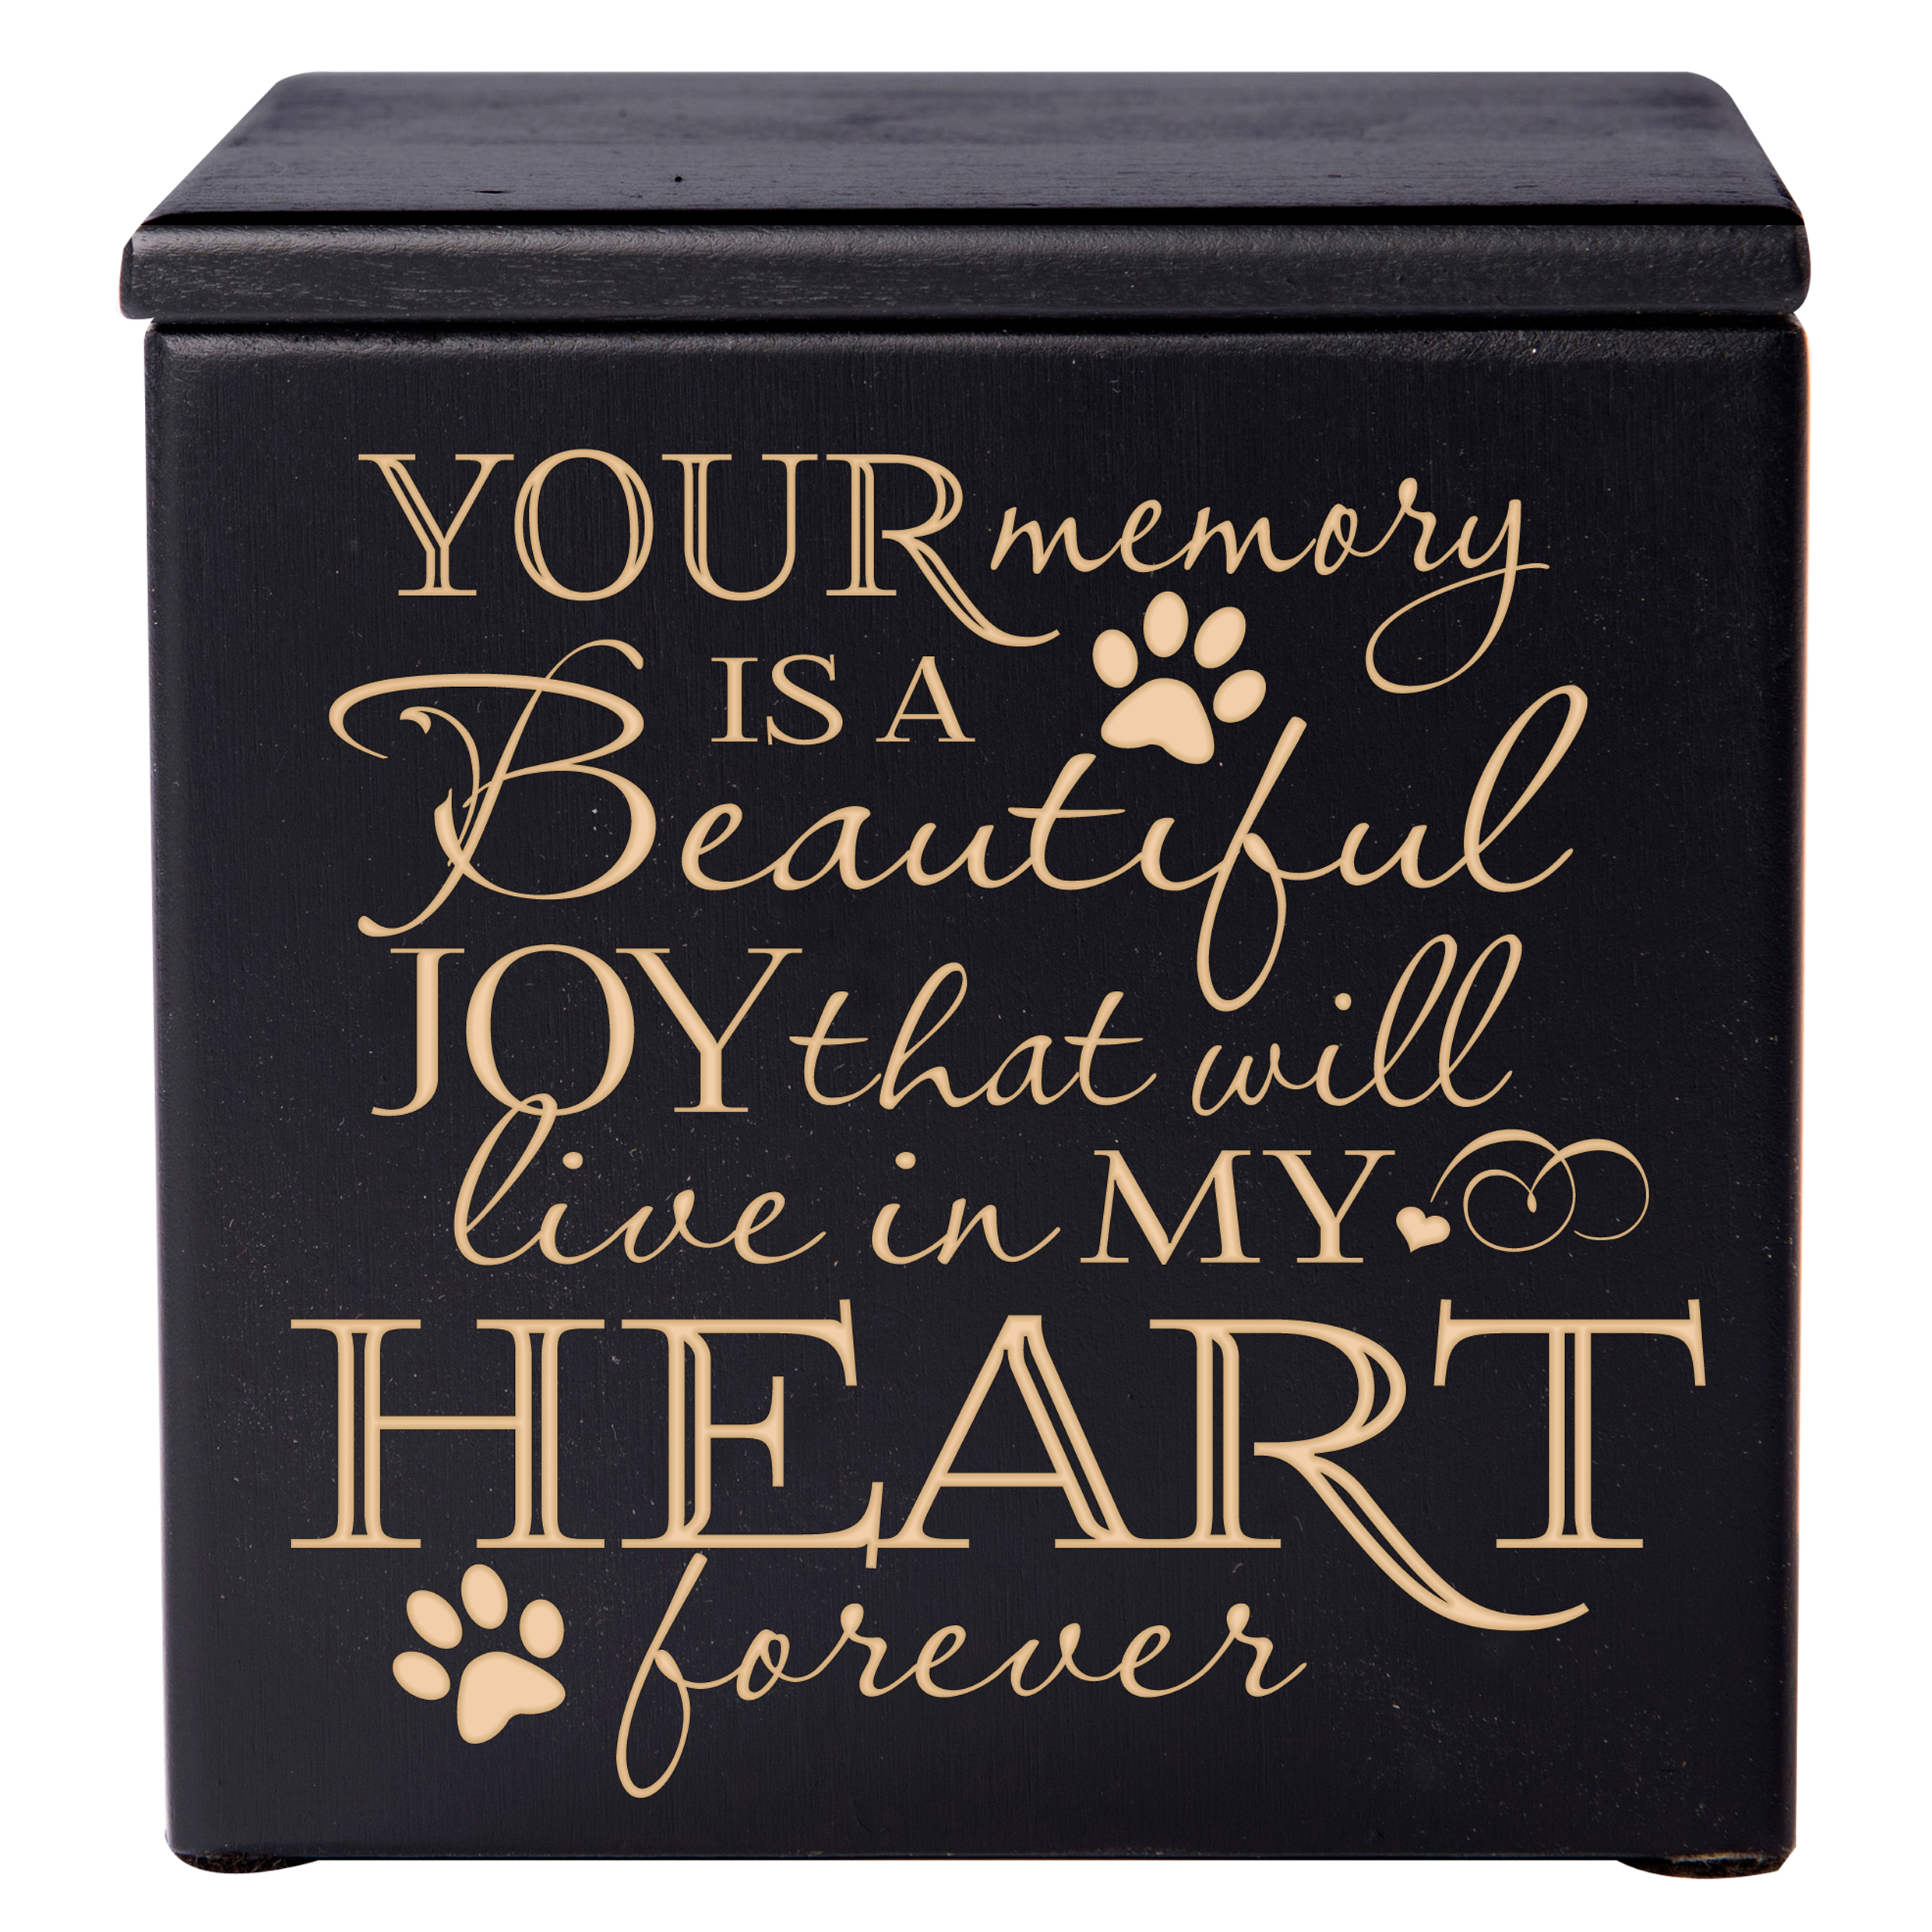 Pet Cremation Urn - Your Memory is a Beautiful Joy That Will Live in My Heart Forever - Small (Black)